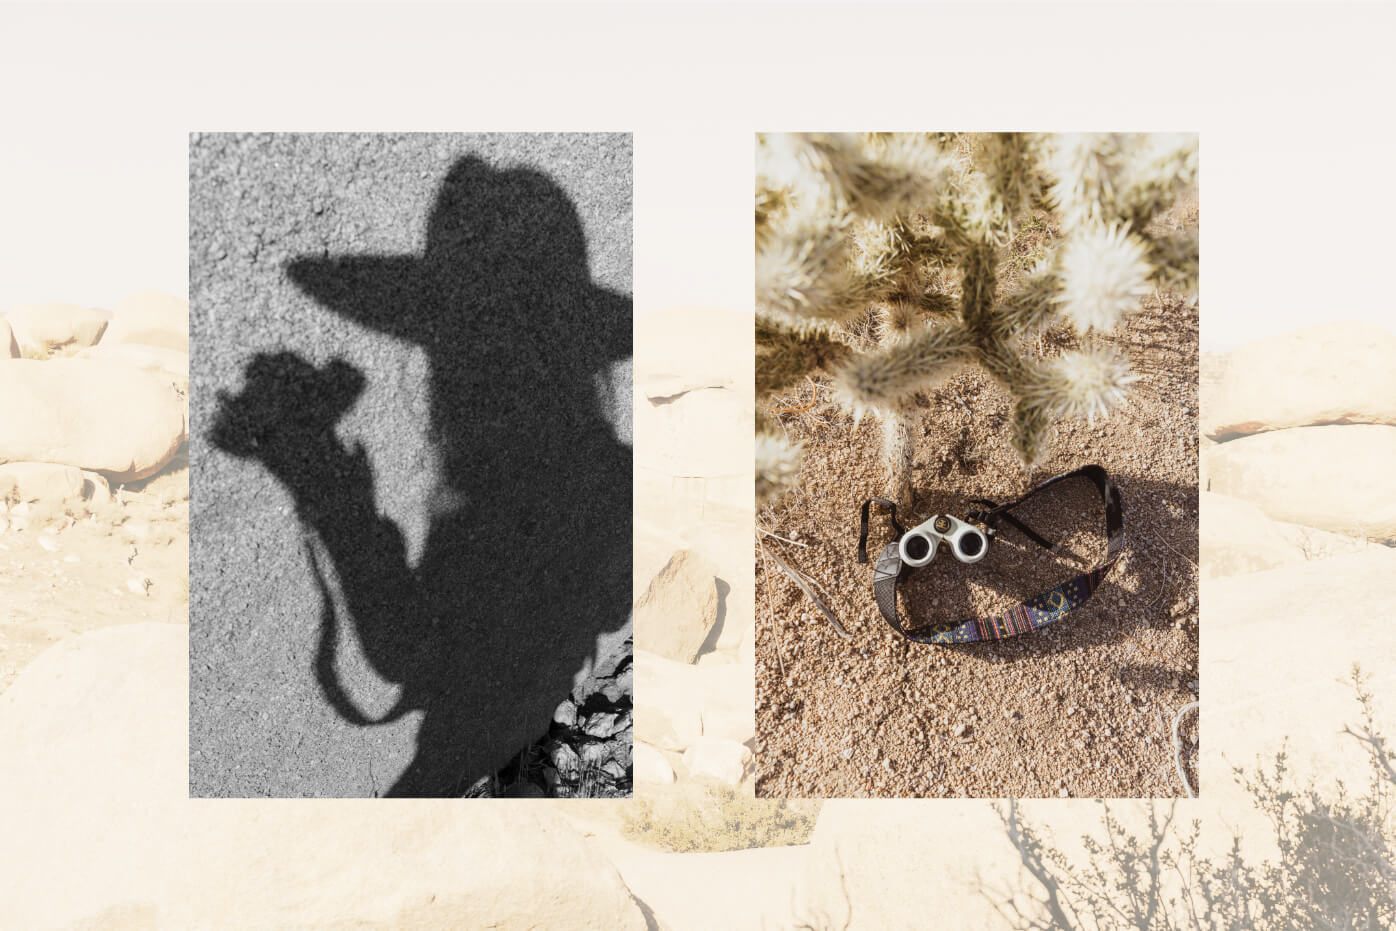 artistic image of Johnie Gall silhouette shadow, and Nocs near a cactus